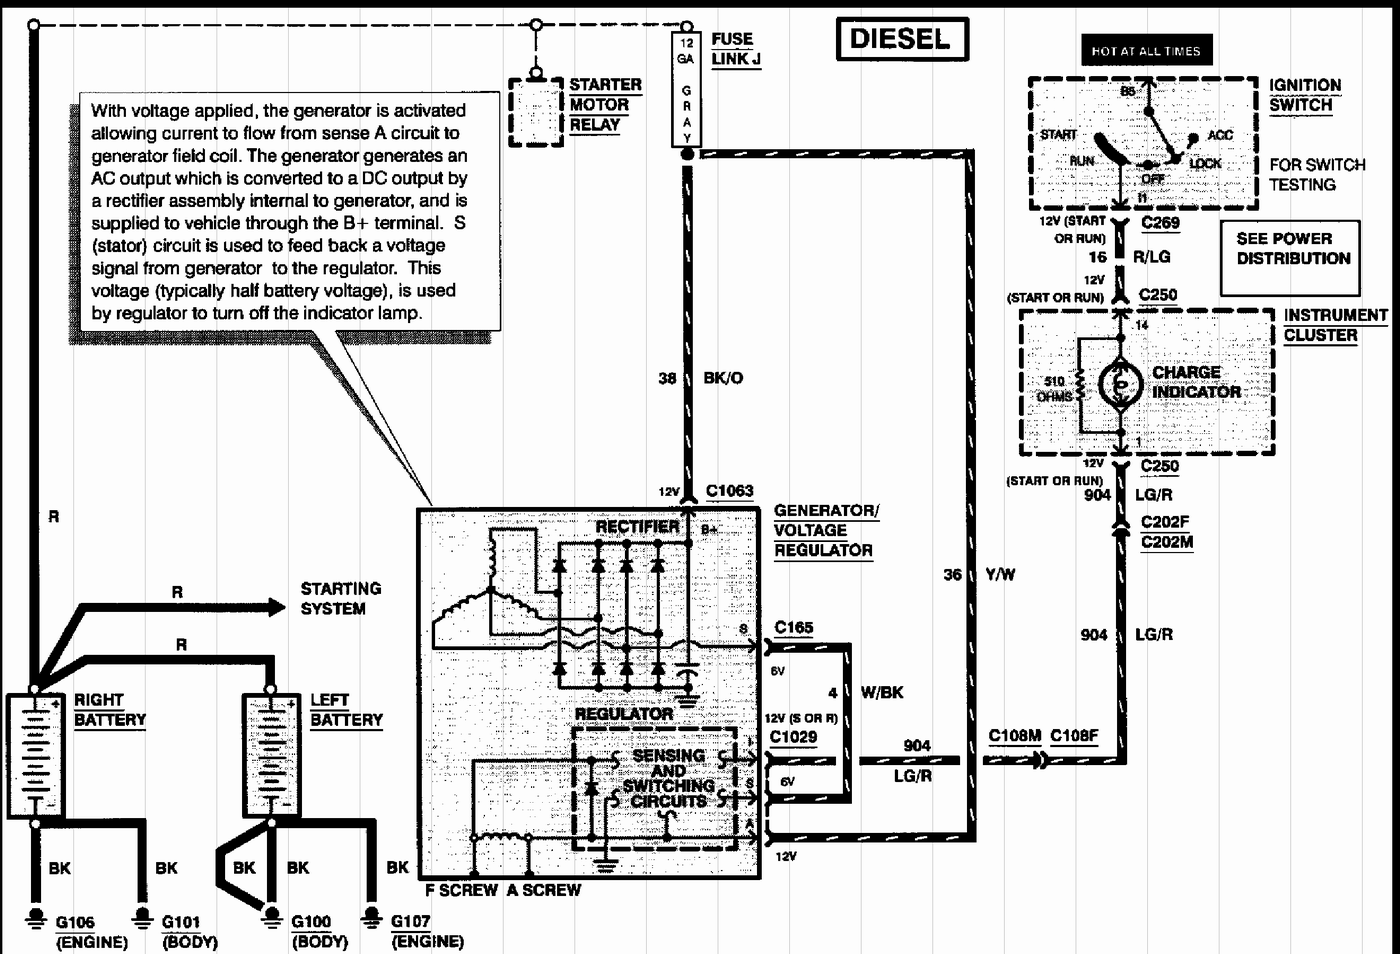 73 powerstroke wiring harness wiring diagram options f250 7 3l wiring diagram 1997 [ 1400 x 954 Pixel ]